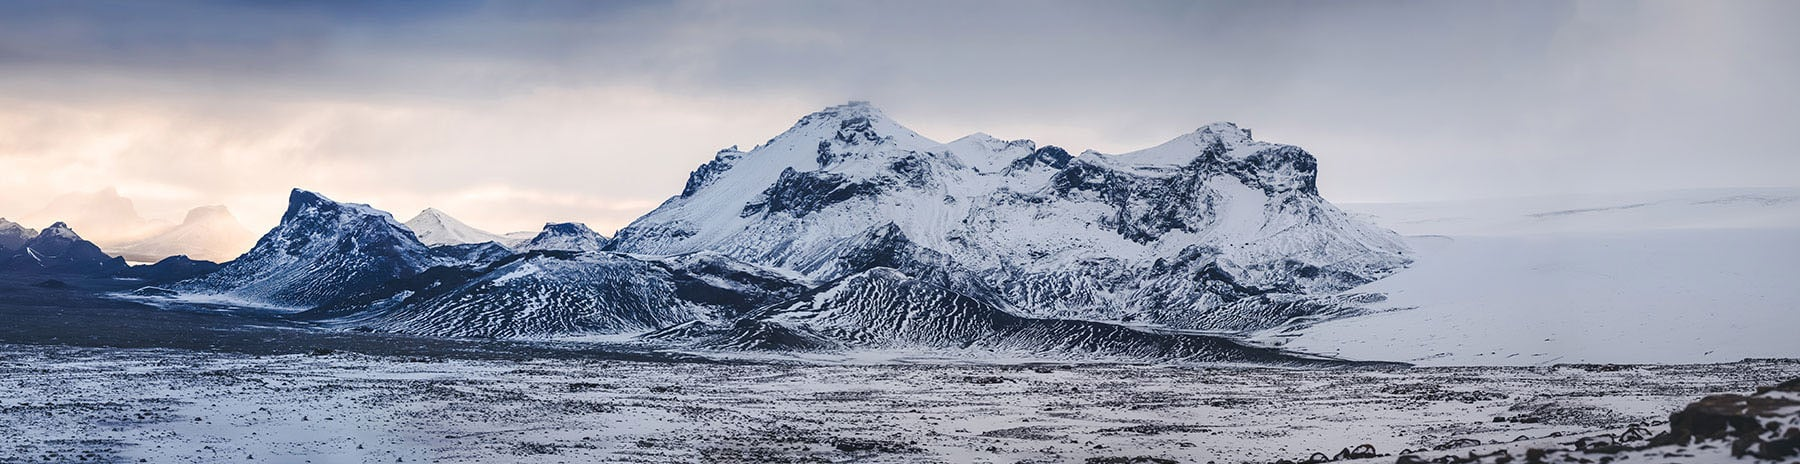 The second largest glacier in Iceland, Langjökull (long glacier) features ice caves, amazing views, and a smooth area perfect for snow-mobiling, or in our case, snow mo-running.